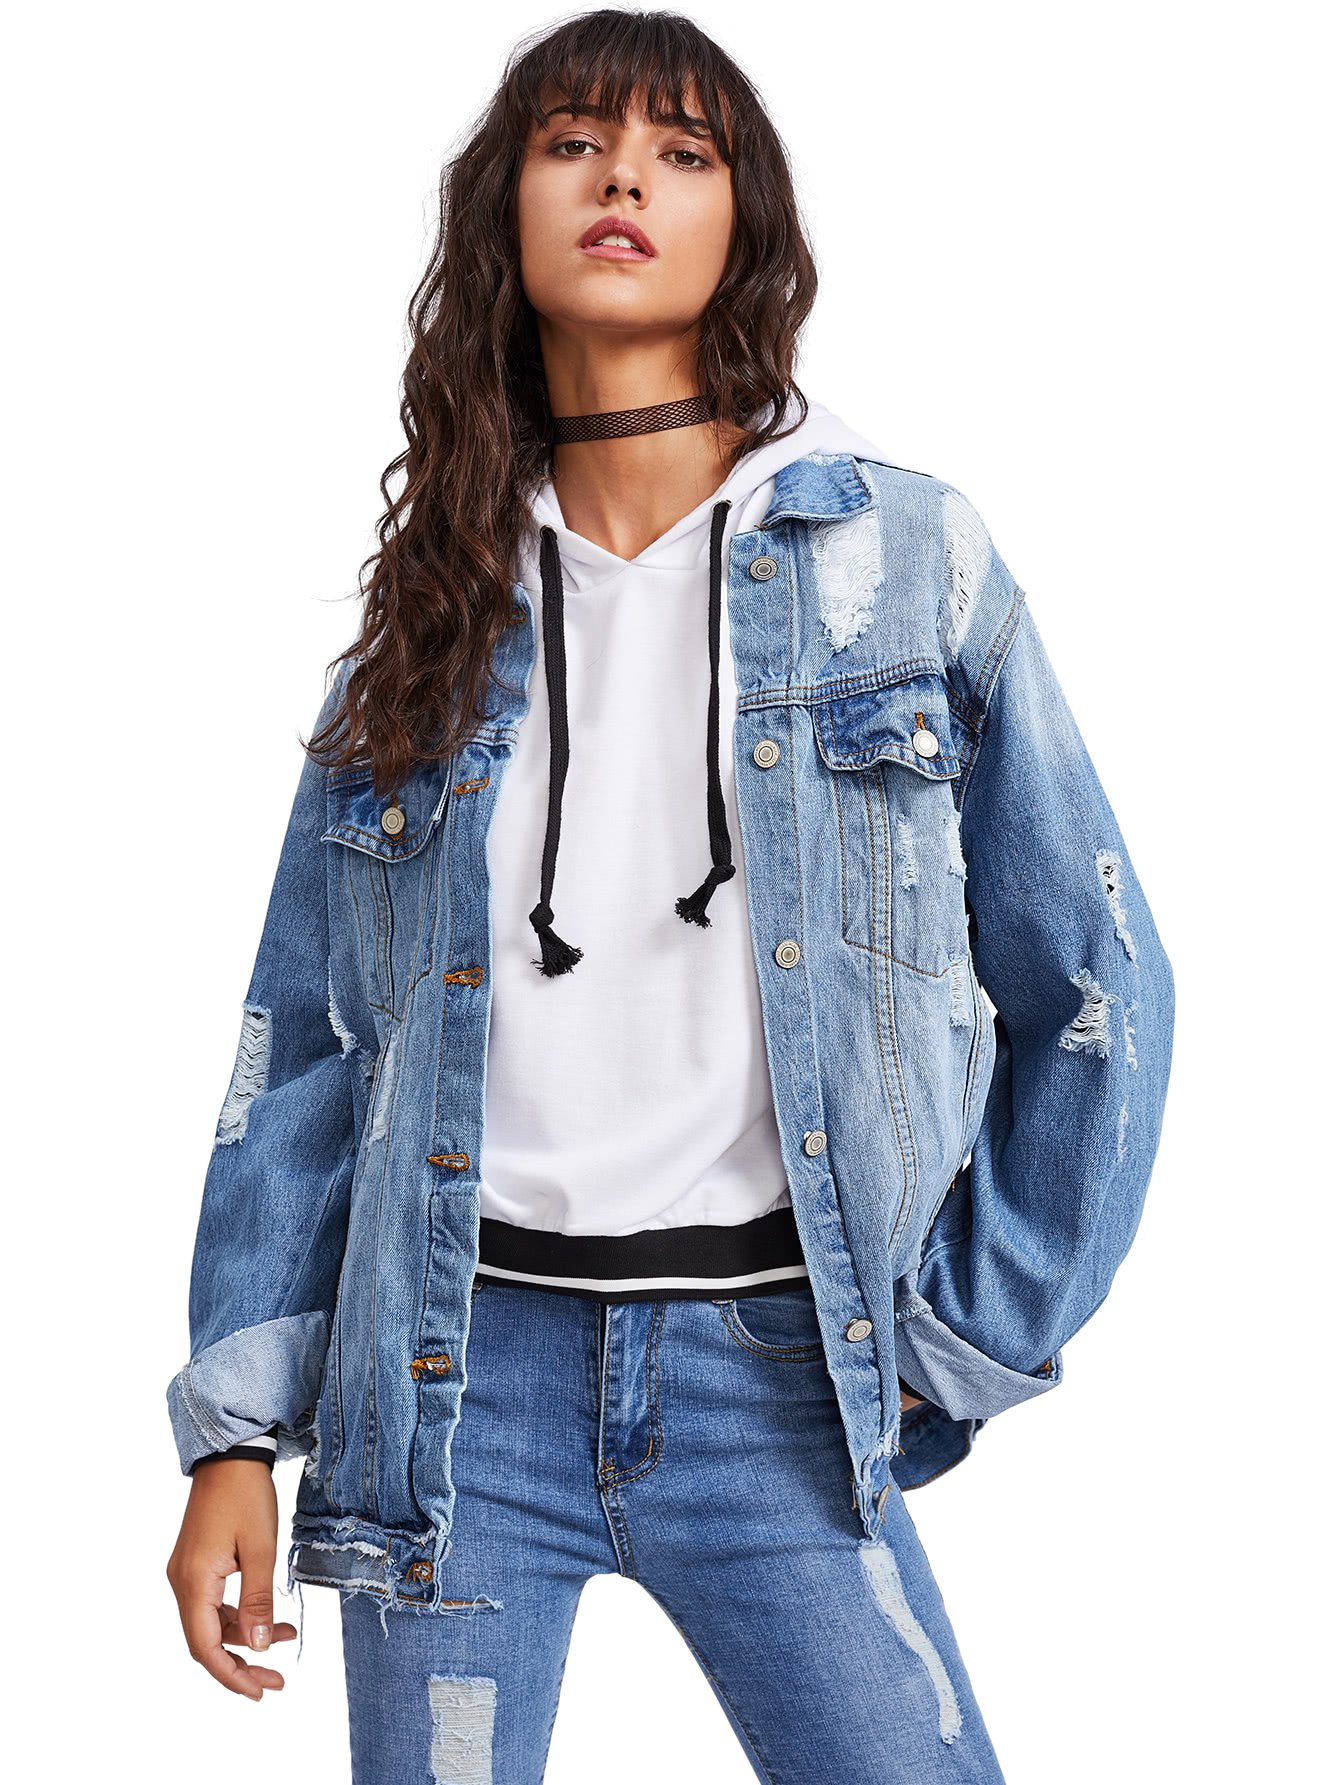 Floerns Women's Ripped Distressed Casual Long Sleeve Denim Jacket Blue L